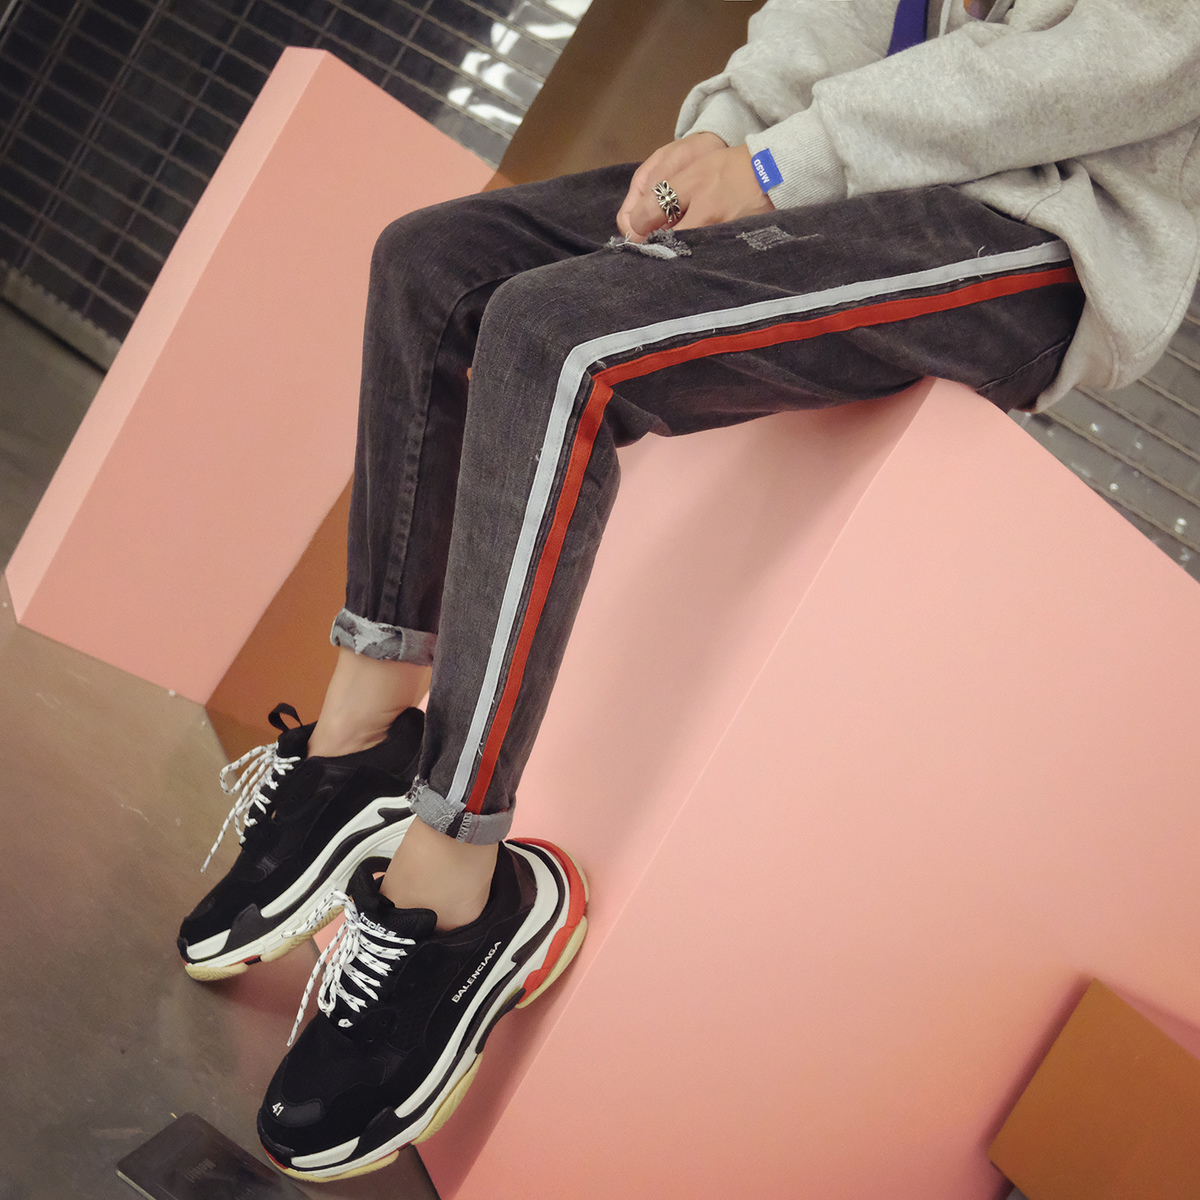 2018 Mens Japanese Style Pencil Pants New Weave Bring Decorate Holes Jeans Casual Washed High Quality Trousers S-xl